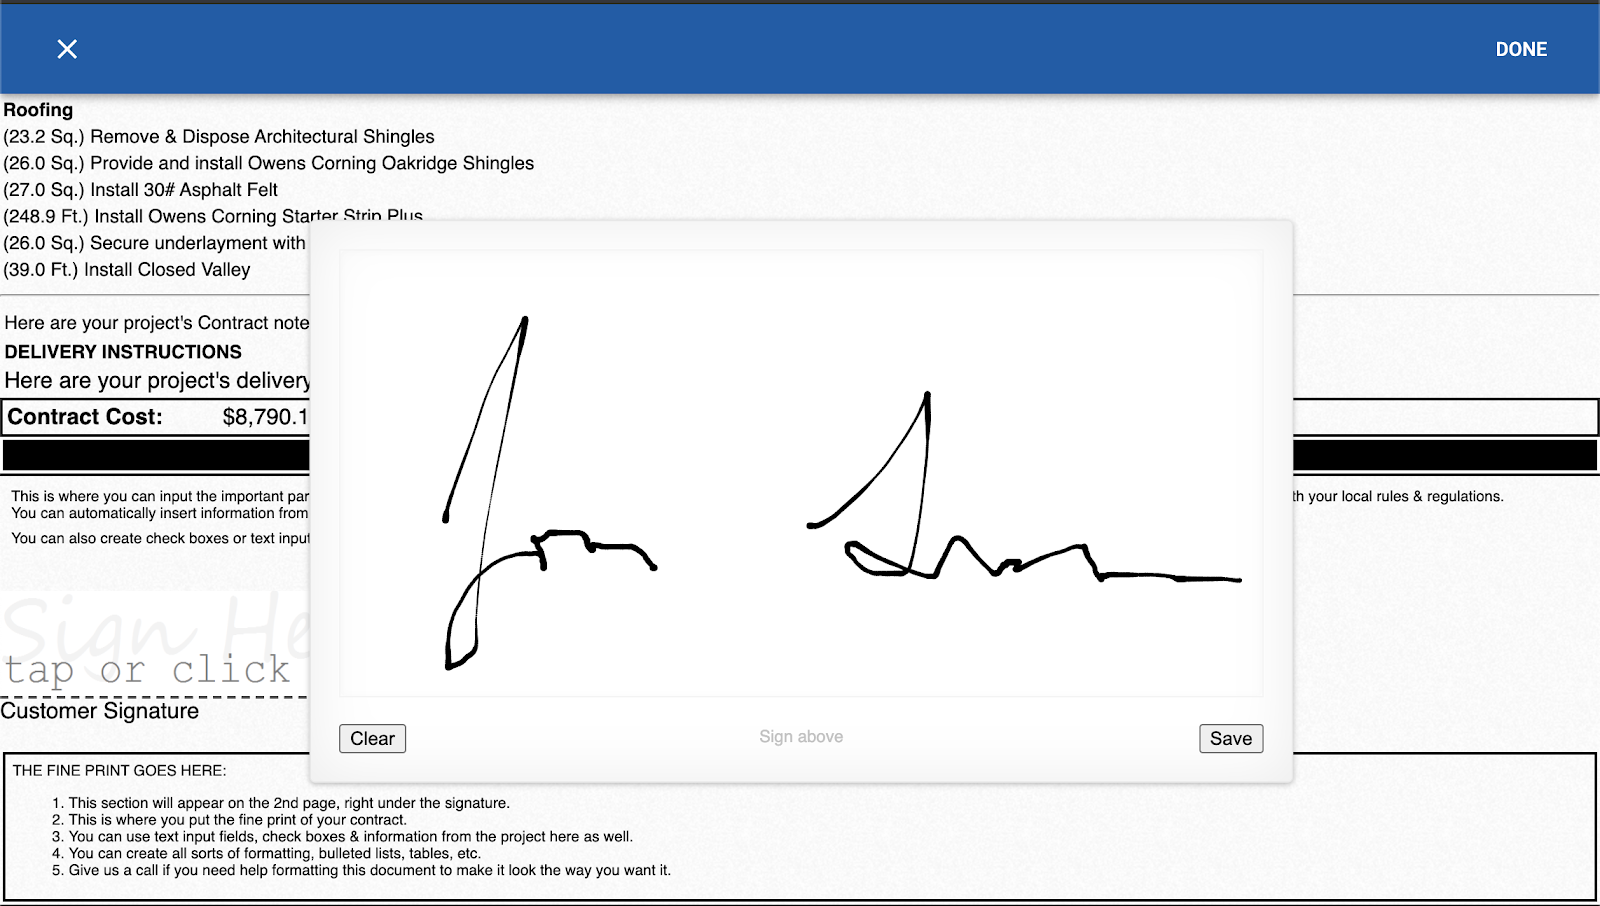 Collecting an electronic signature for your contract with RoofSnap